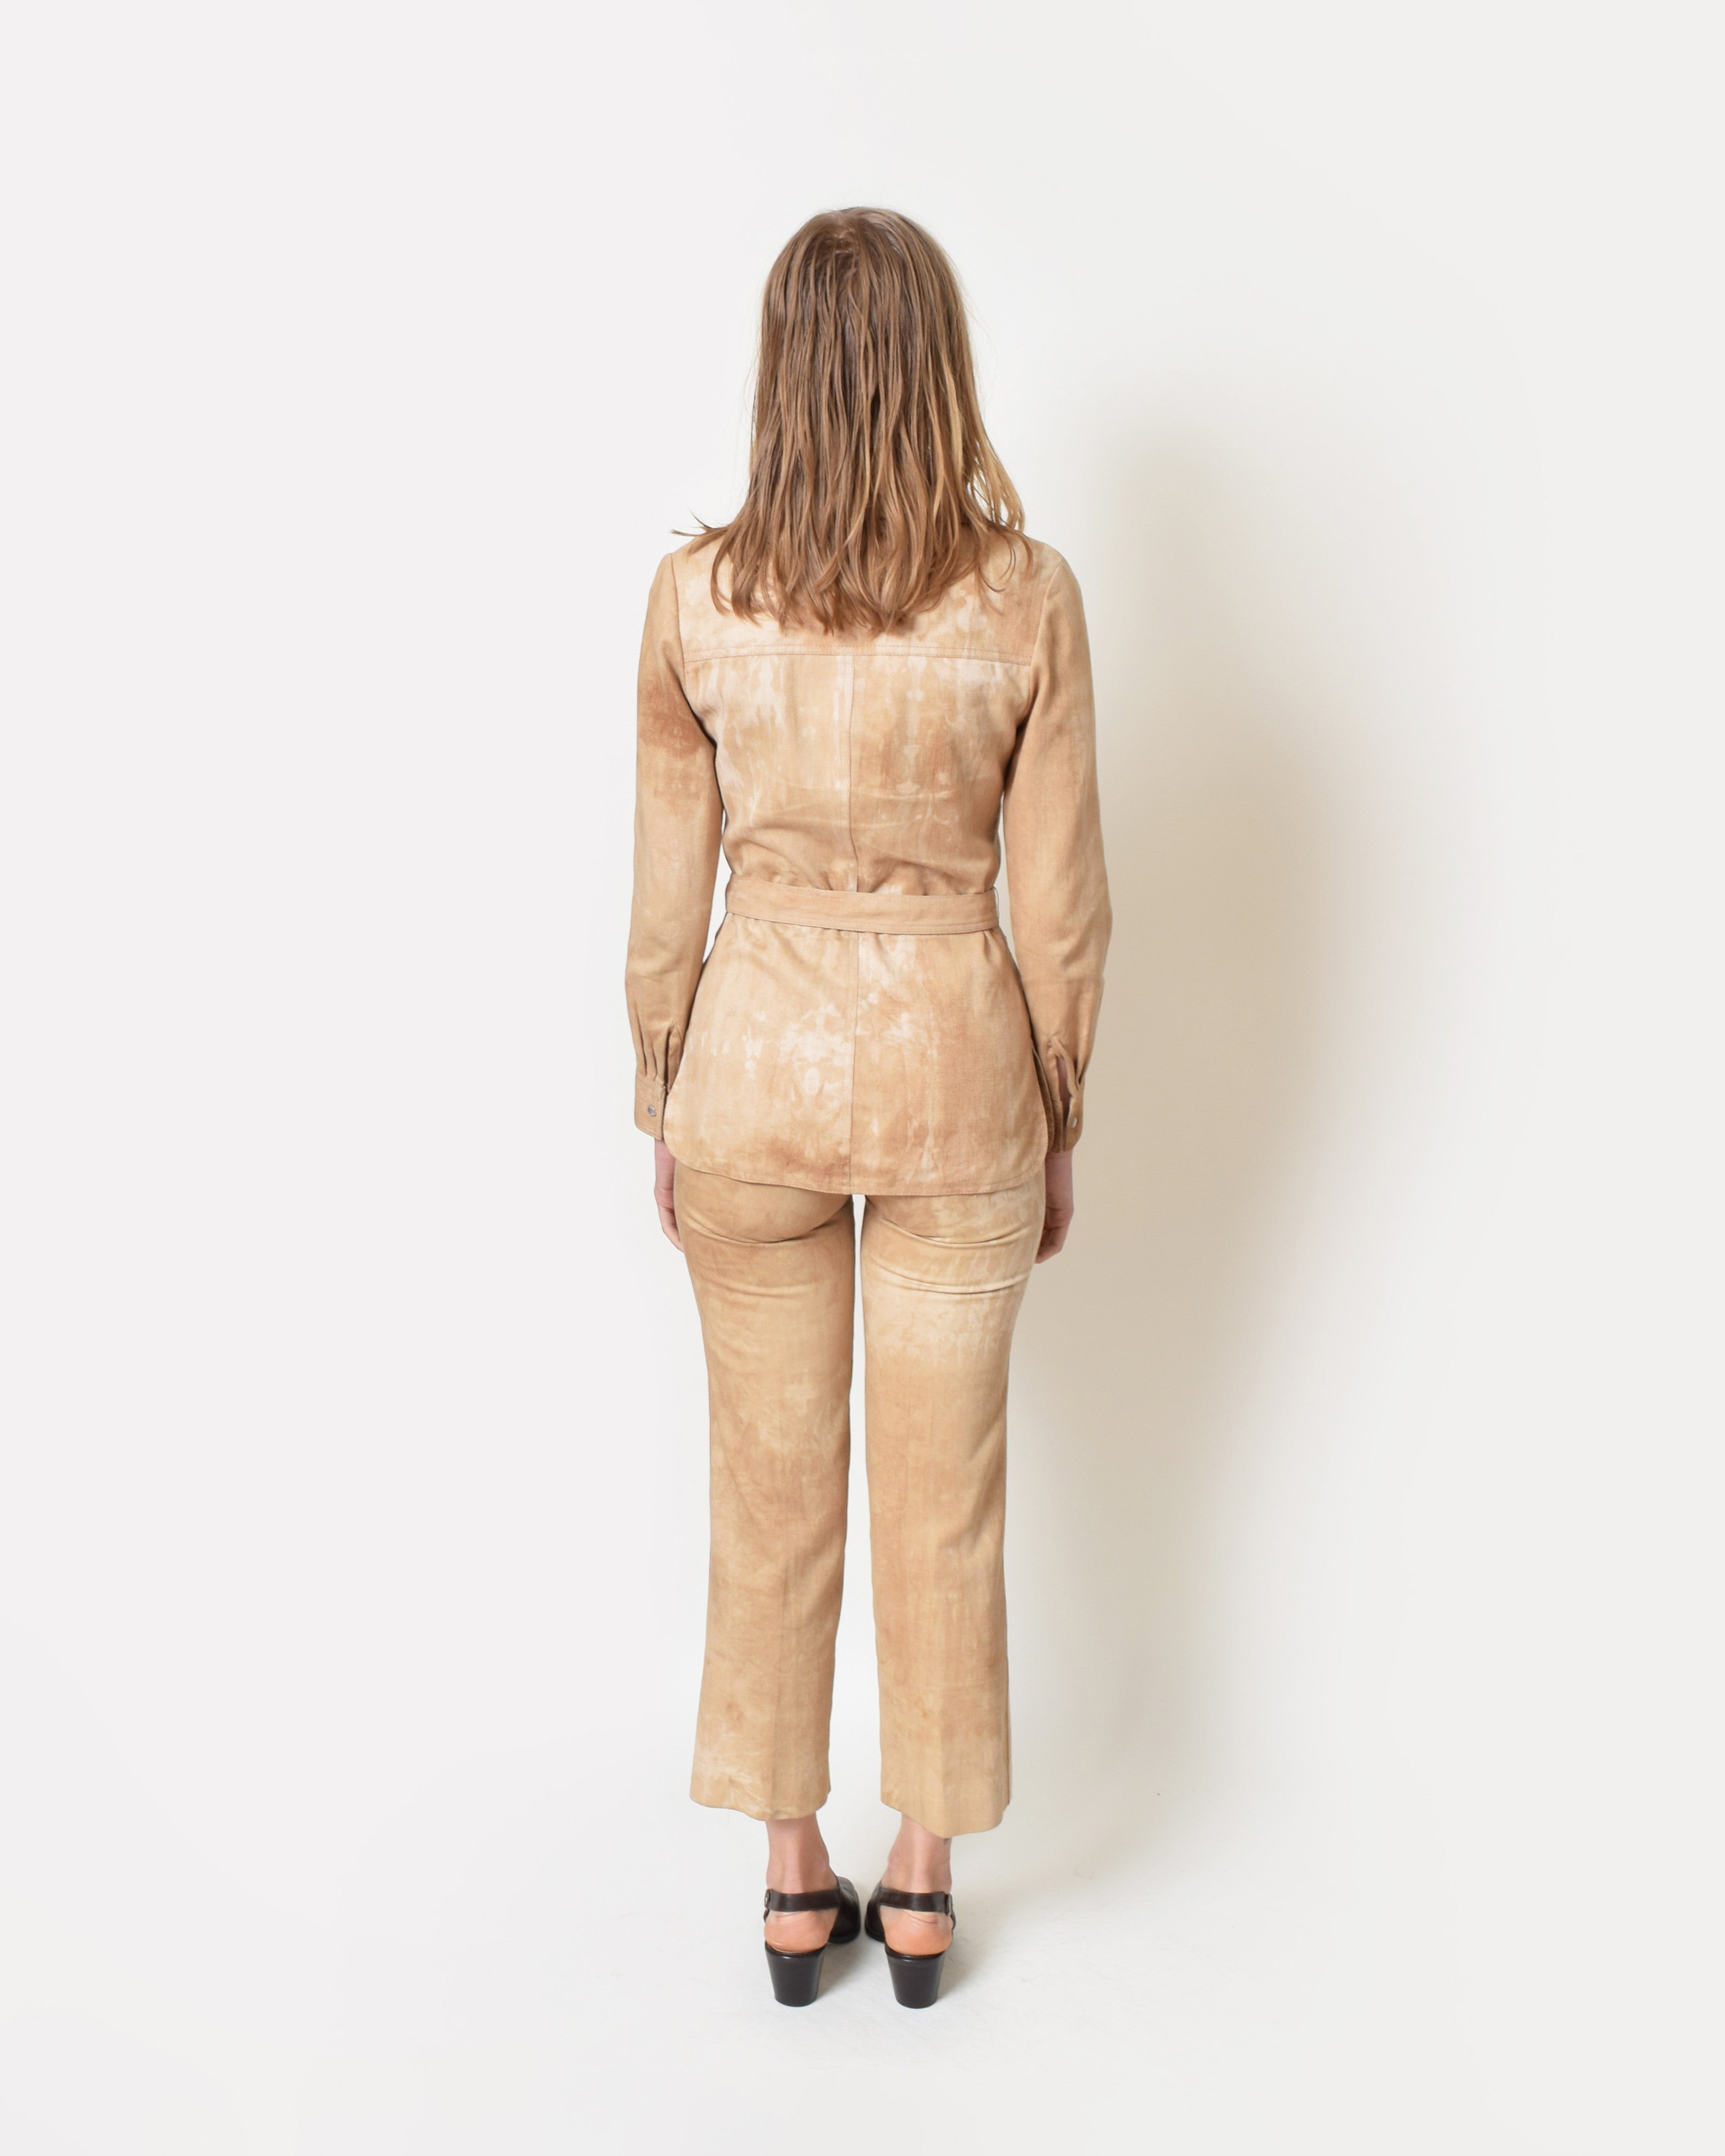 Vintage 1970s Distressed Tan Denim Suit